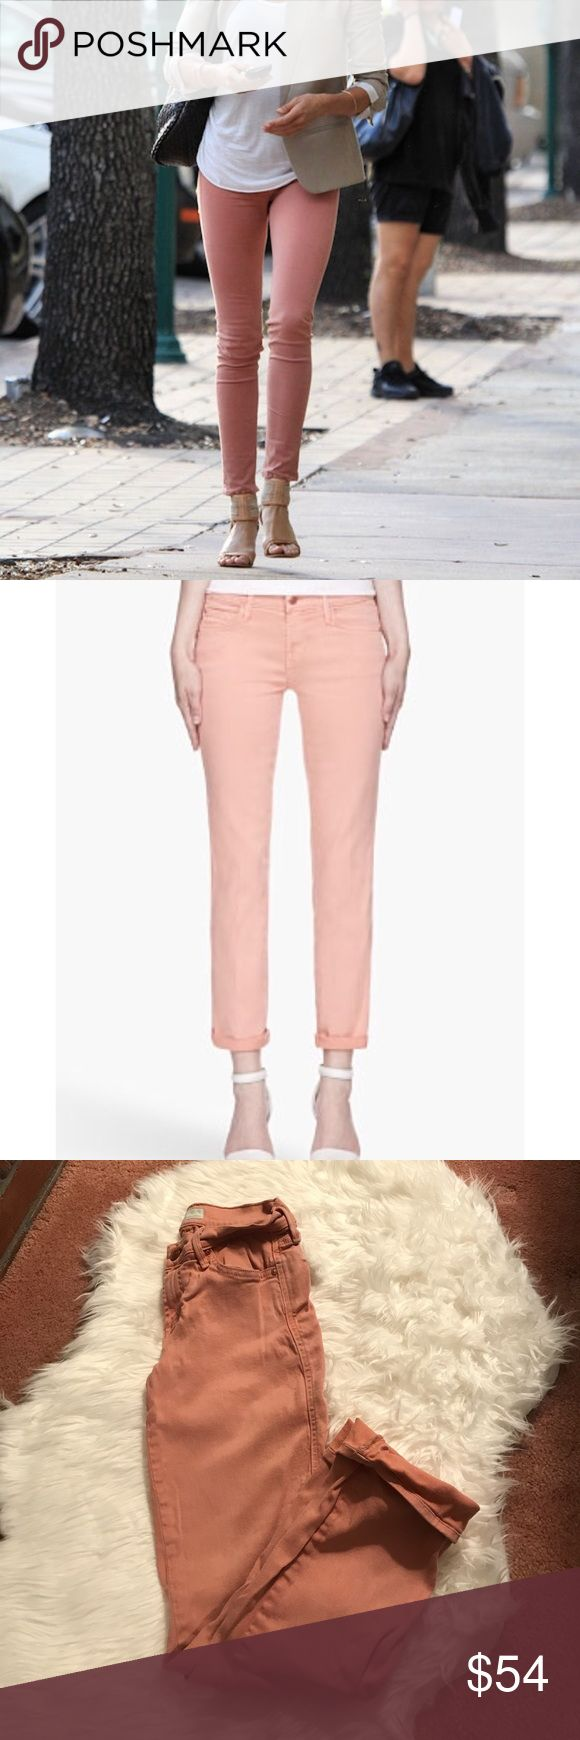 """MOTHER the rascal cuff jeans in peach size 26 Stretchy comfy colored denim! Can be rolled or left unrolled. Color is fading around the waist and pockets and the pants are fairly wrinkly otherwise they are in good condition! Inseam is 27"""" MOTHER Jeans Ankle & Cropped"""